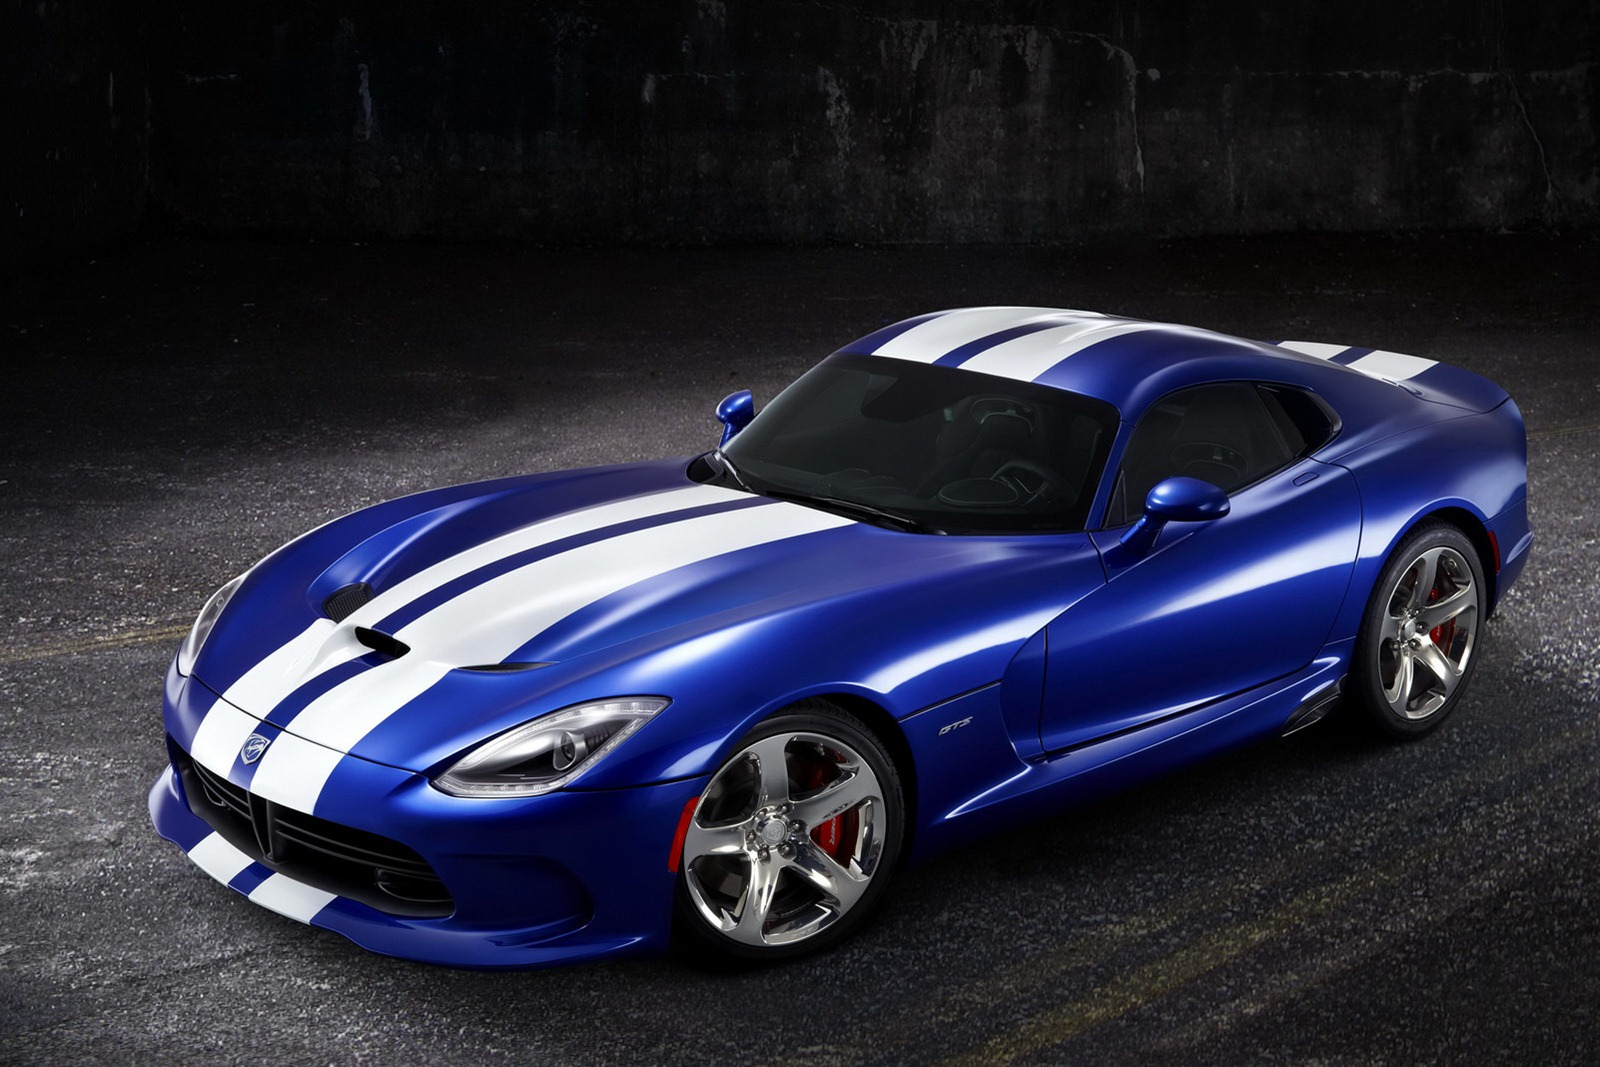 2013 SRT Viper 2013 SRT Viper is luxurious and clearly expensive